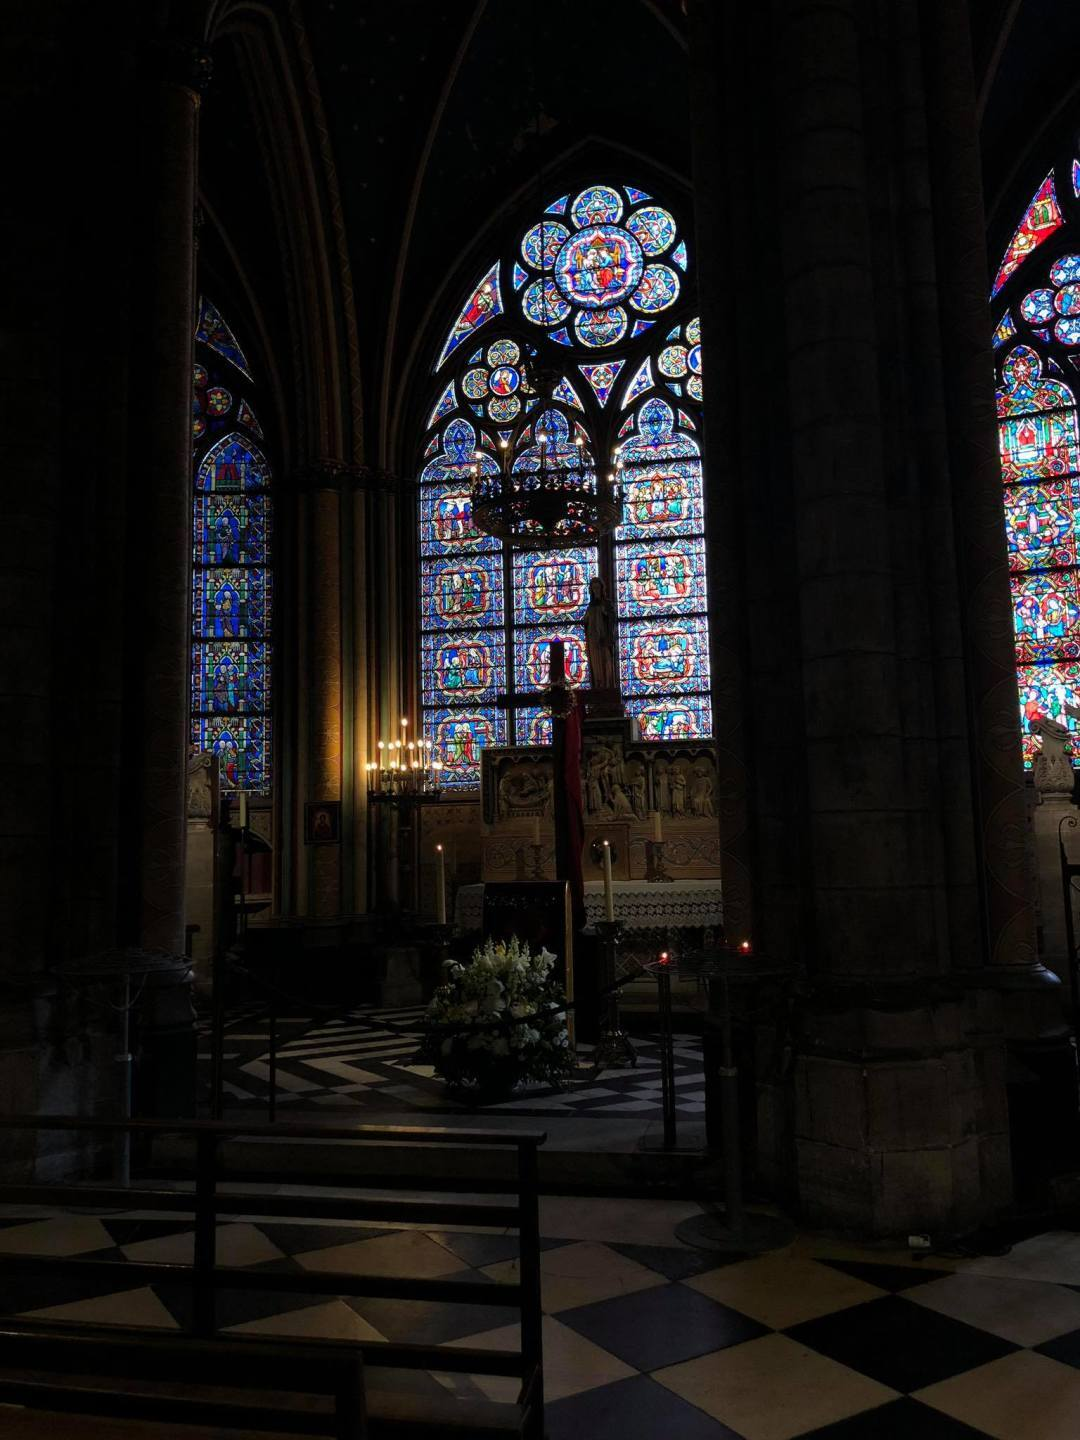 Photos show the beautiful interior of Paris' historic Notre Dame Cathedral